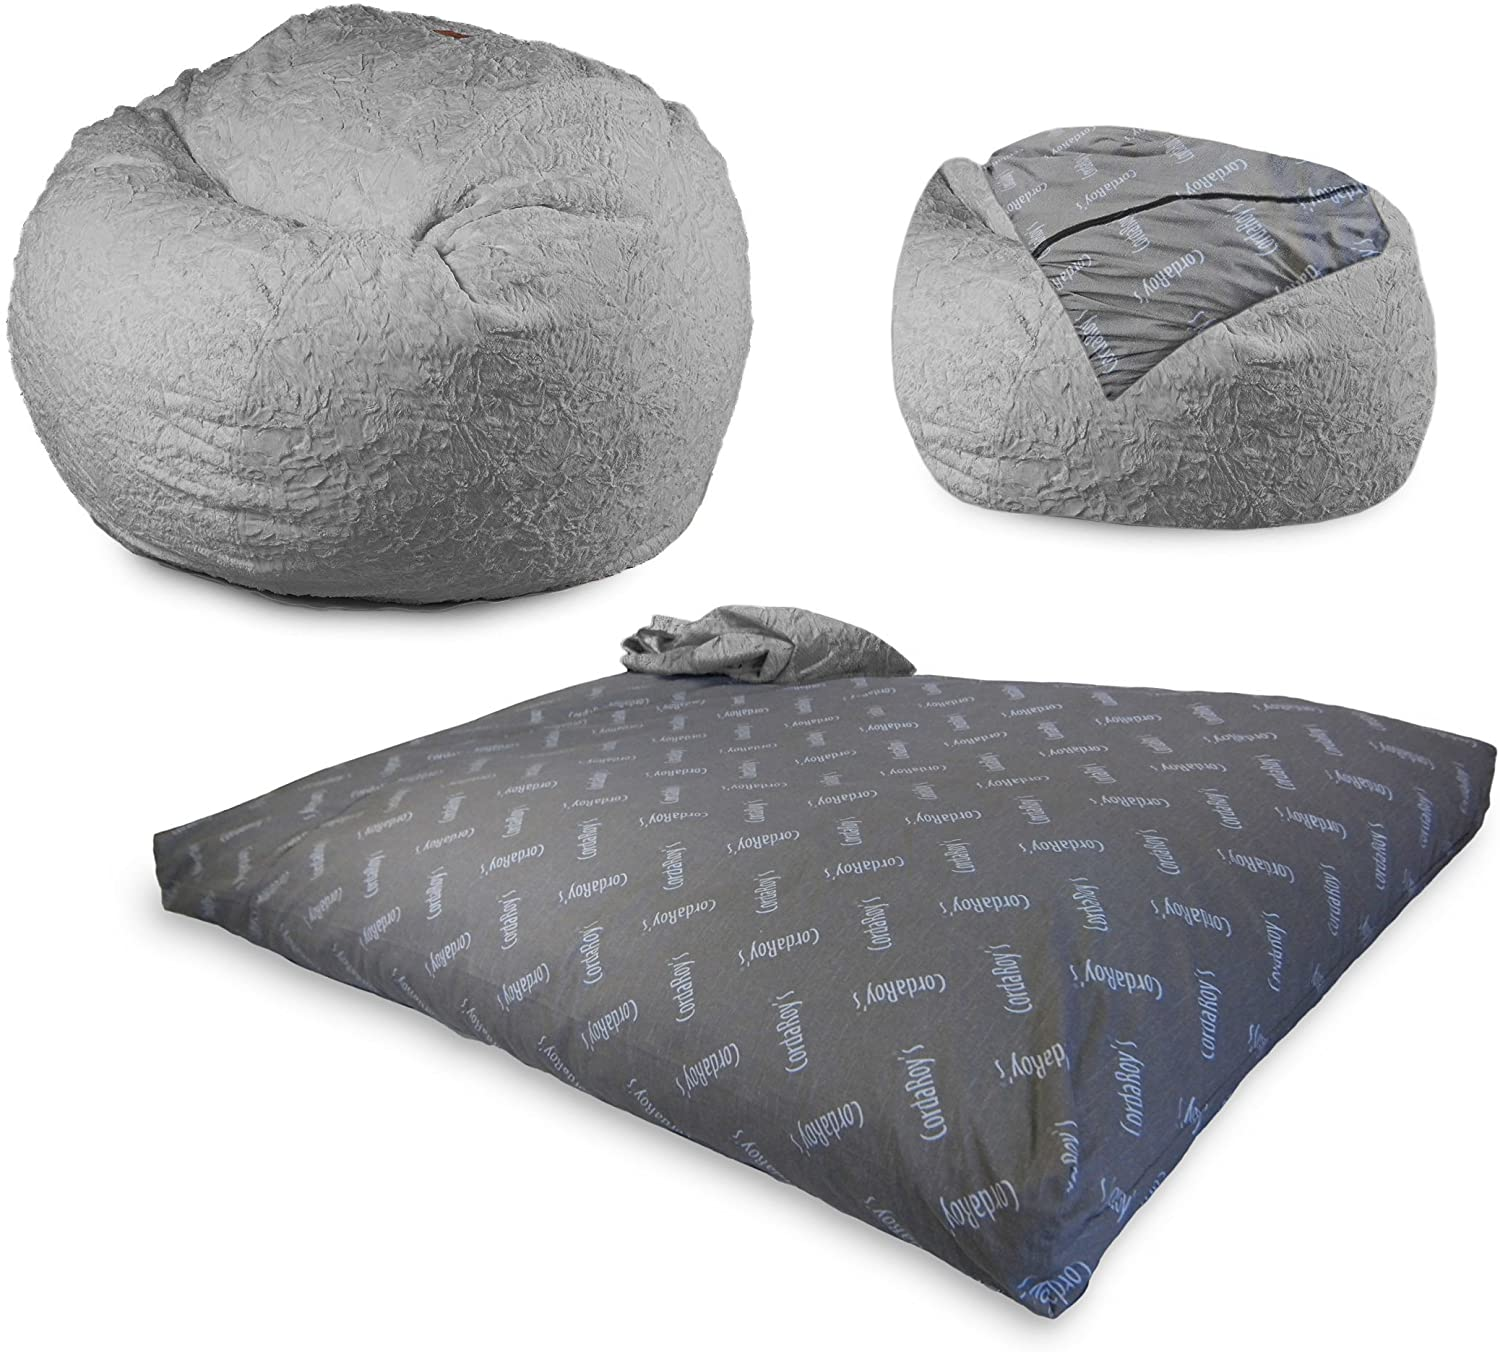 CordaRoy's Faux Fur Bean Bag Chair, Convertible Chair Folds from Bean Bag to Bed, As Seen on Shark Tank, Grey - QueenSize